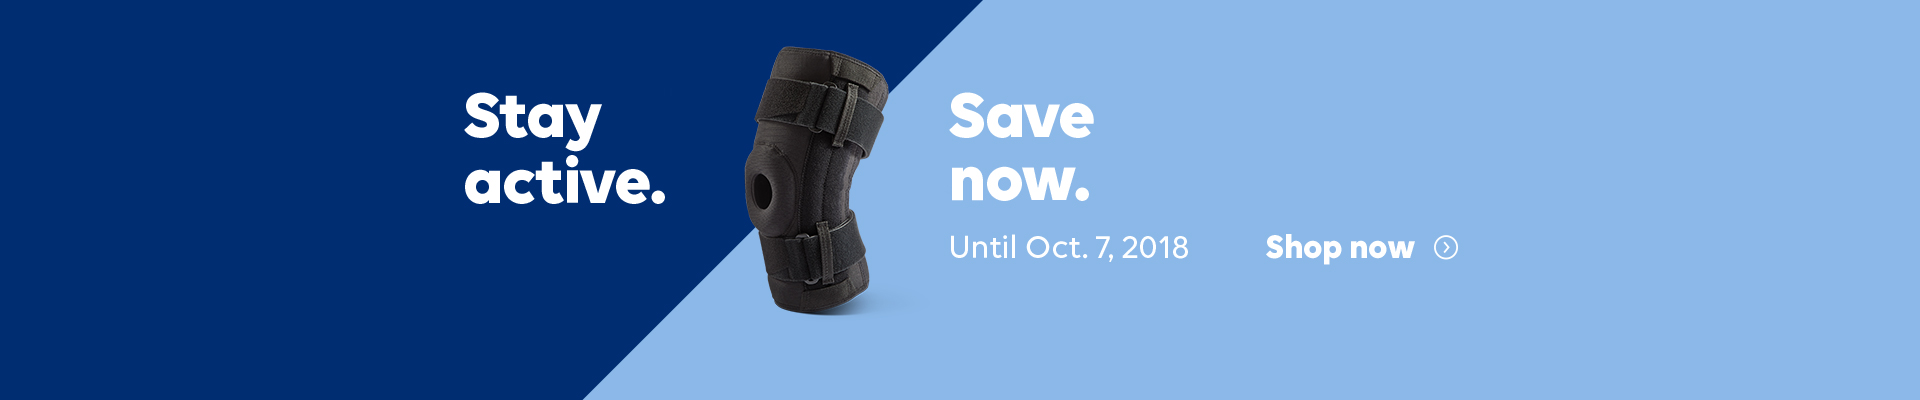 Stay active. Save now. Until October 7, 2018